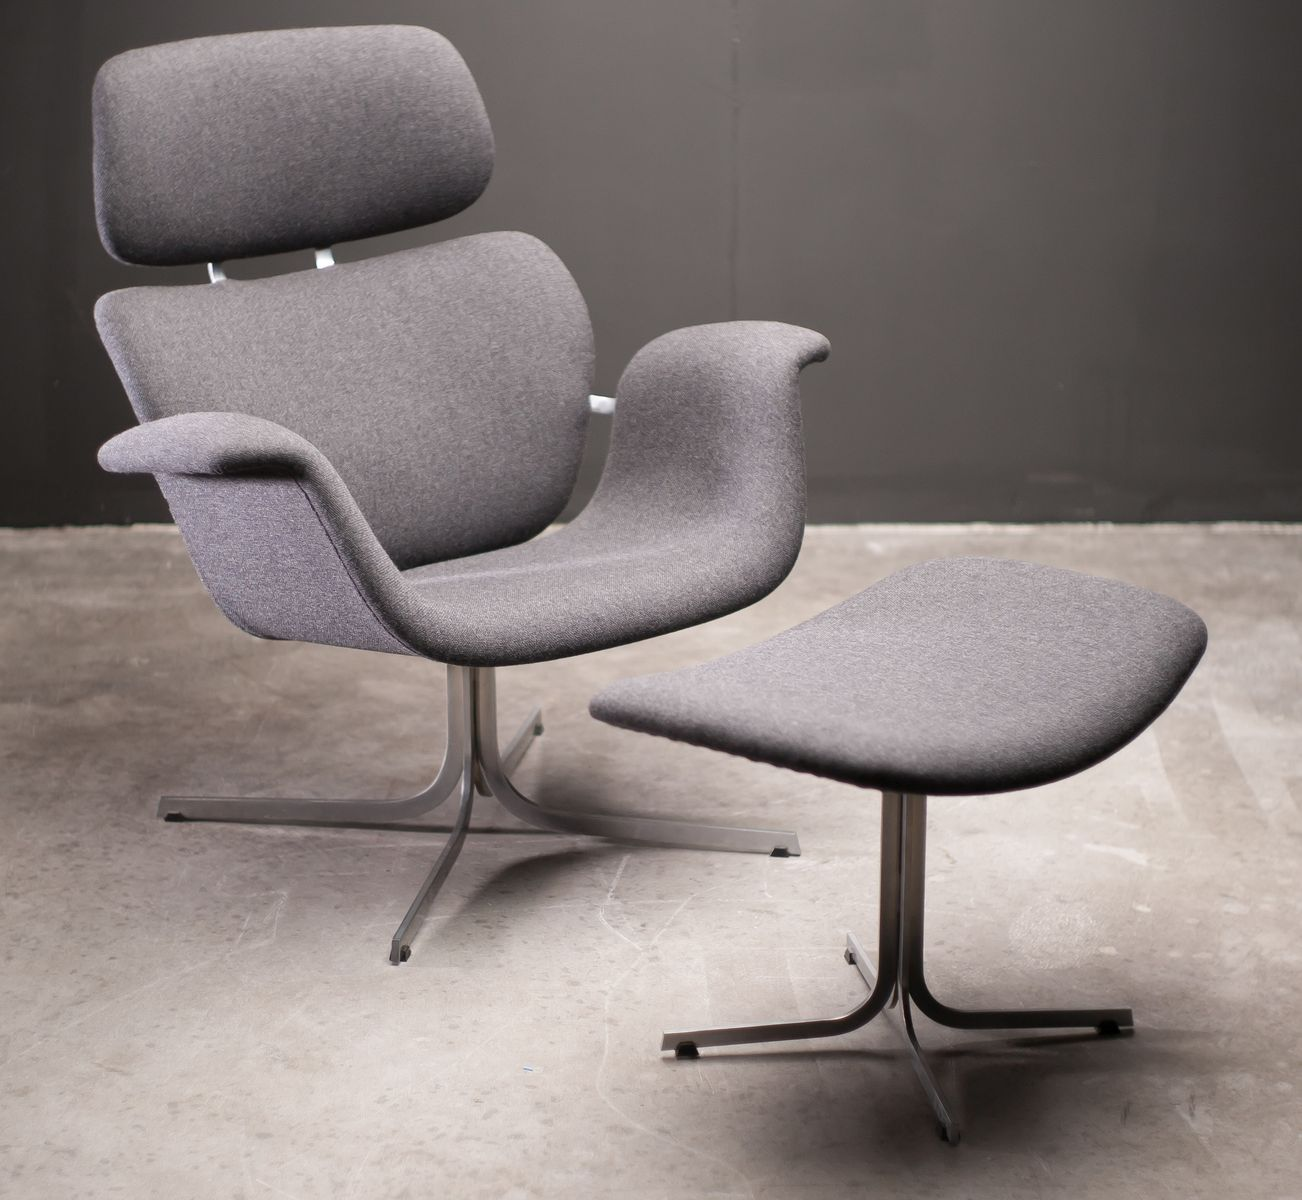 F545 lounge chair with matching footstool by pierre paulin for Matching lounge furniture